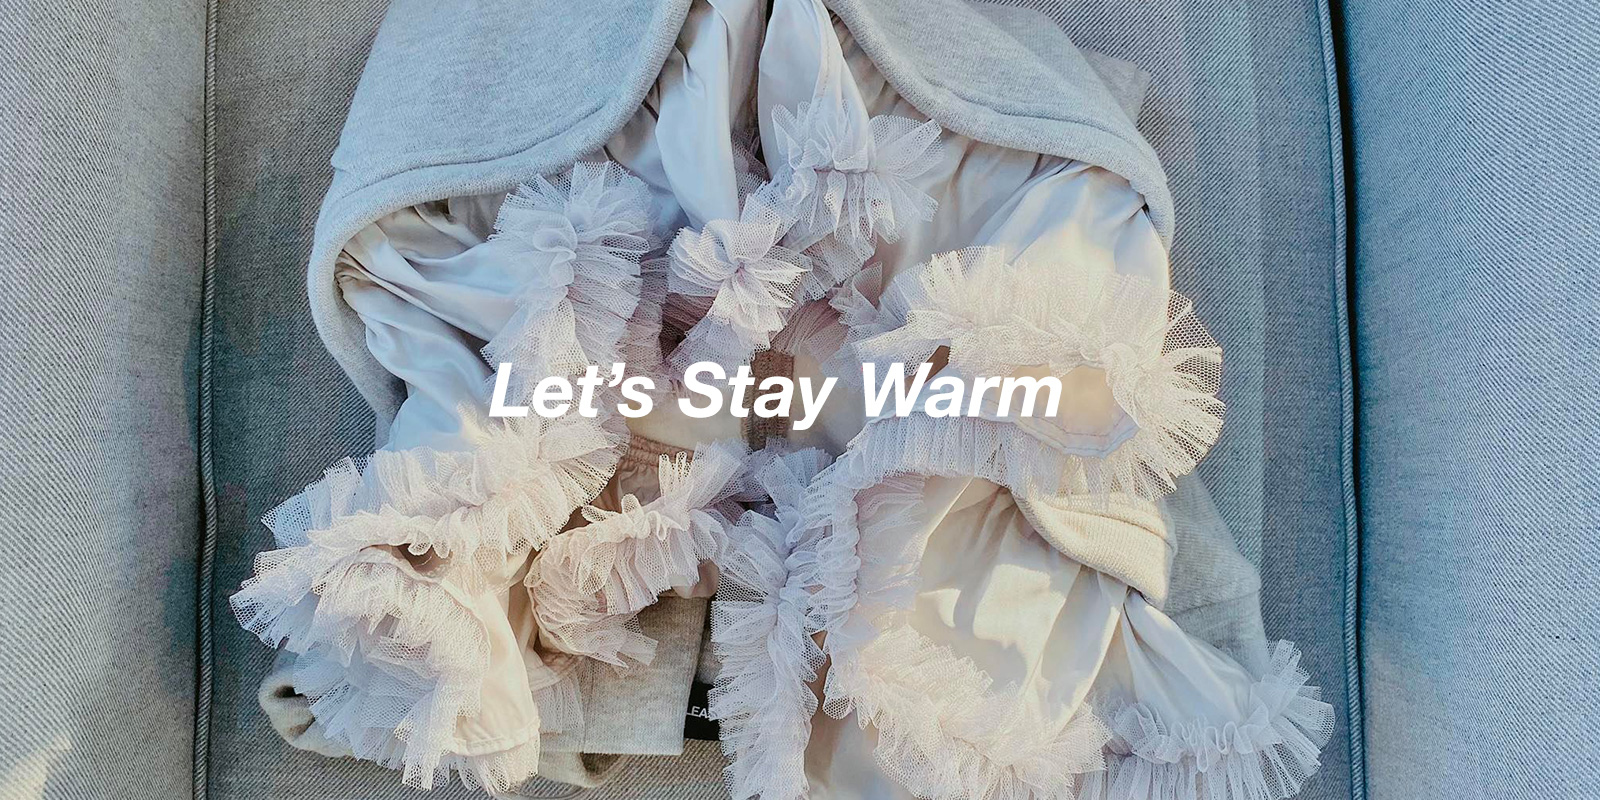 Let's Stay Warm